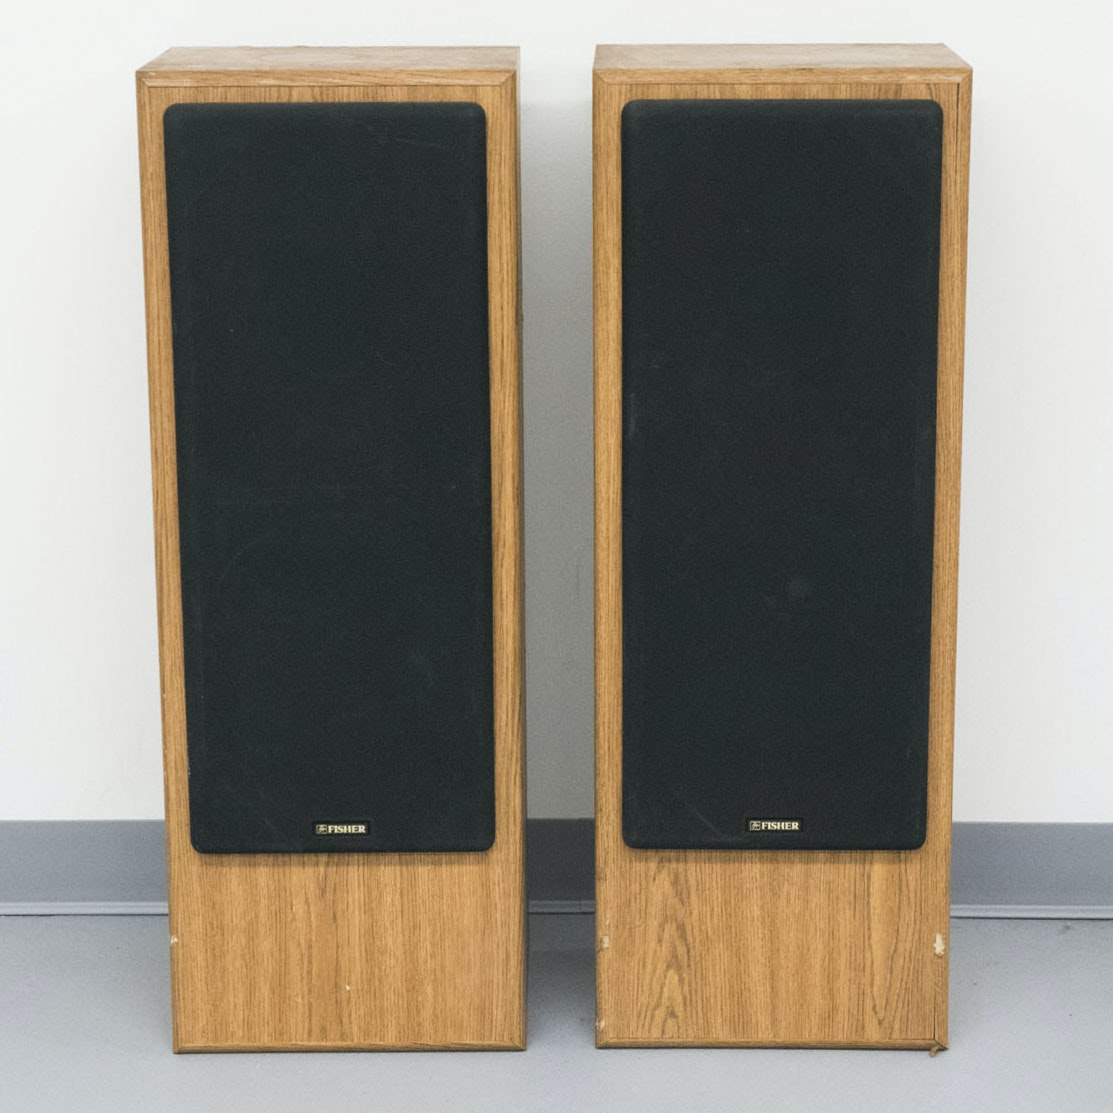 Vintage Fisher STV-9005 Floorstanding Speakers